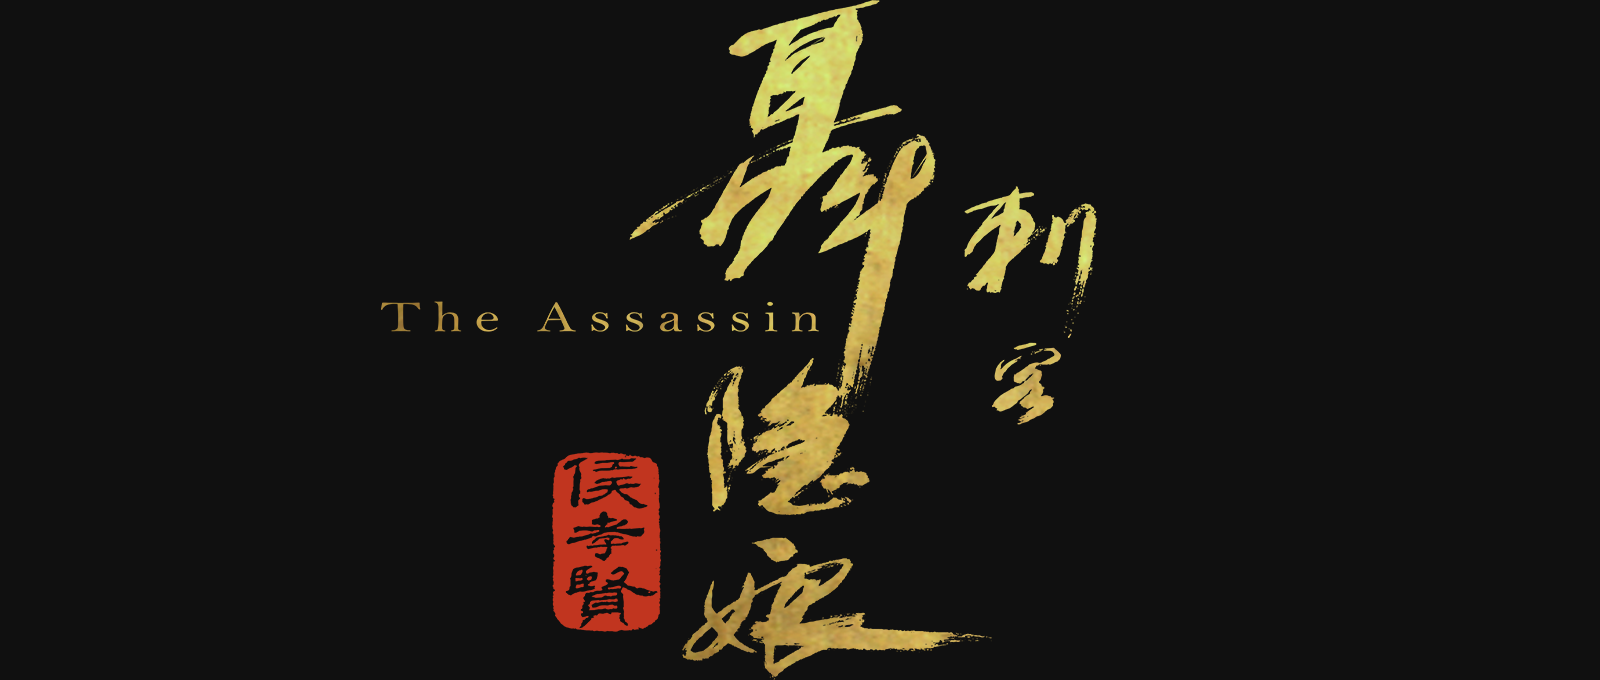 [Netflix-Feature-Film-TheAssassin]_[English_Thailand]_Title-Treatment.png